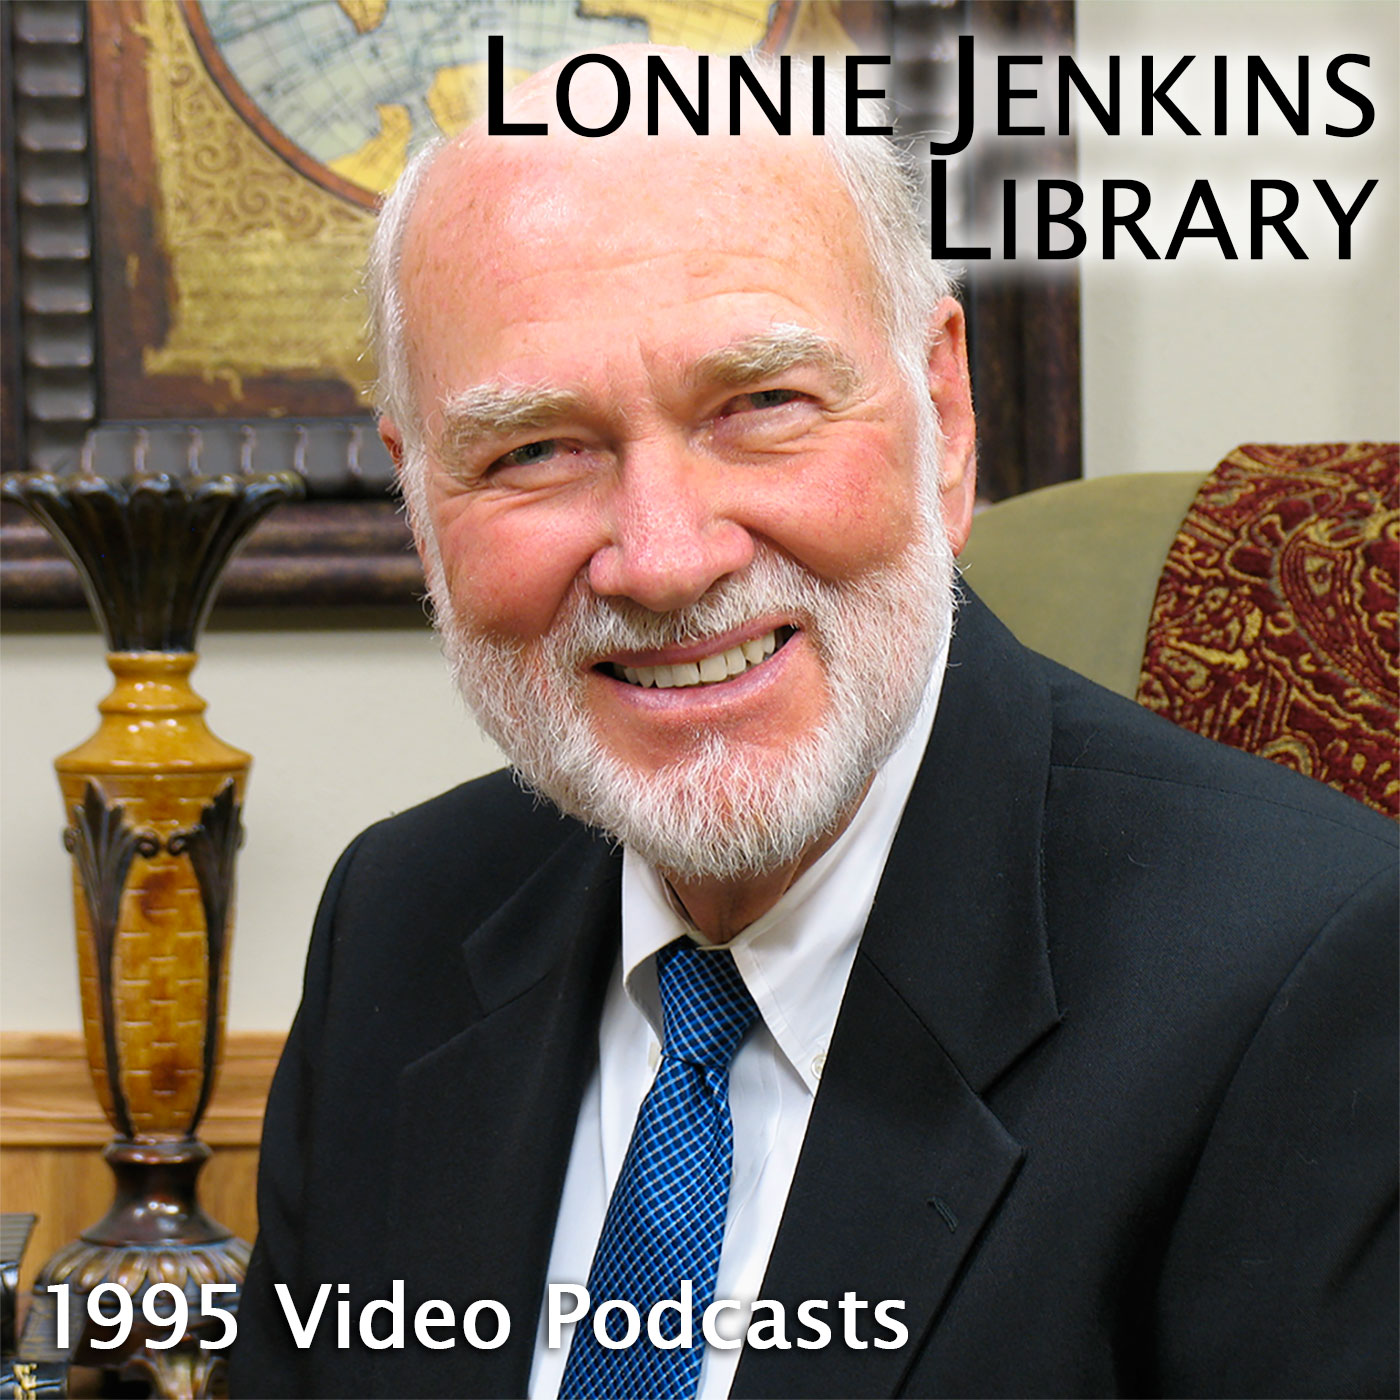 BCF 1995 Video Archives - Lonnie Jenkins